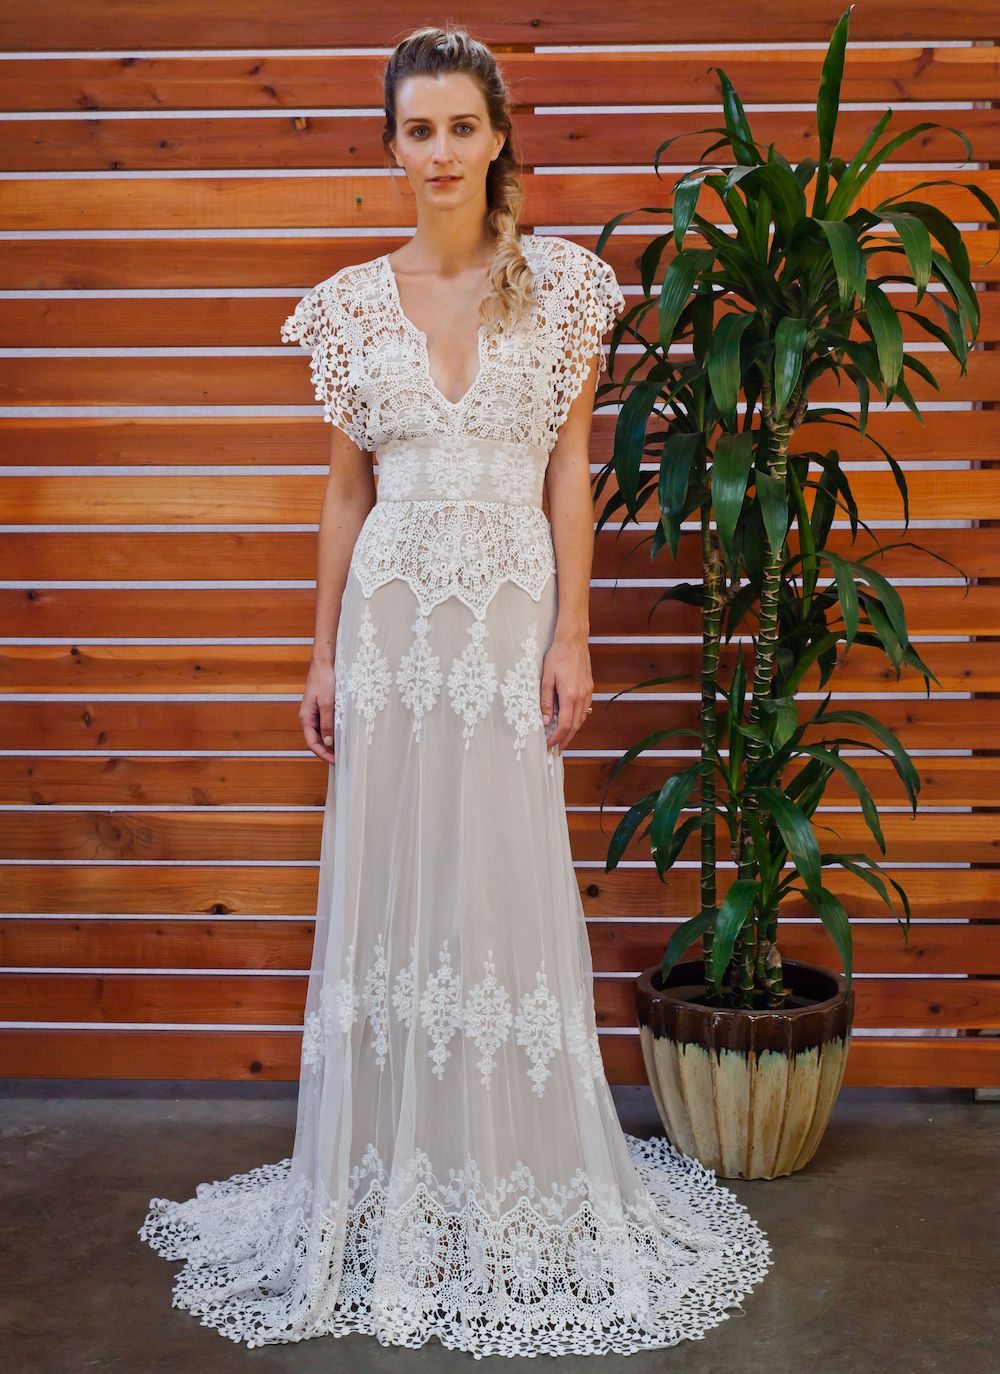 Azalea Lace Gown By Dreamers And Lovers